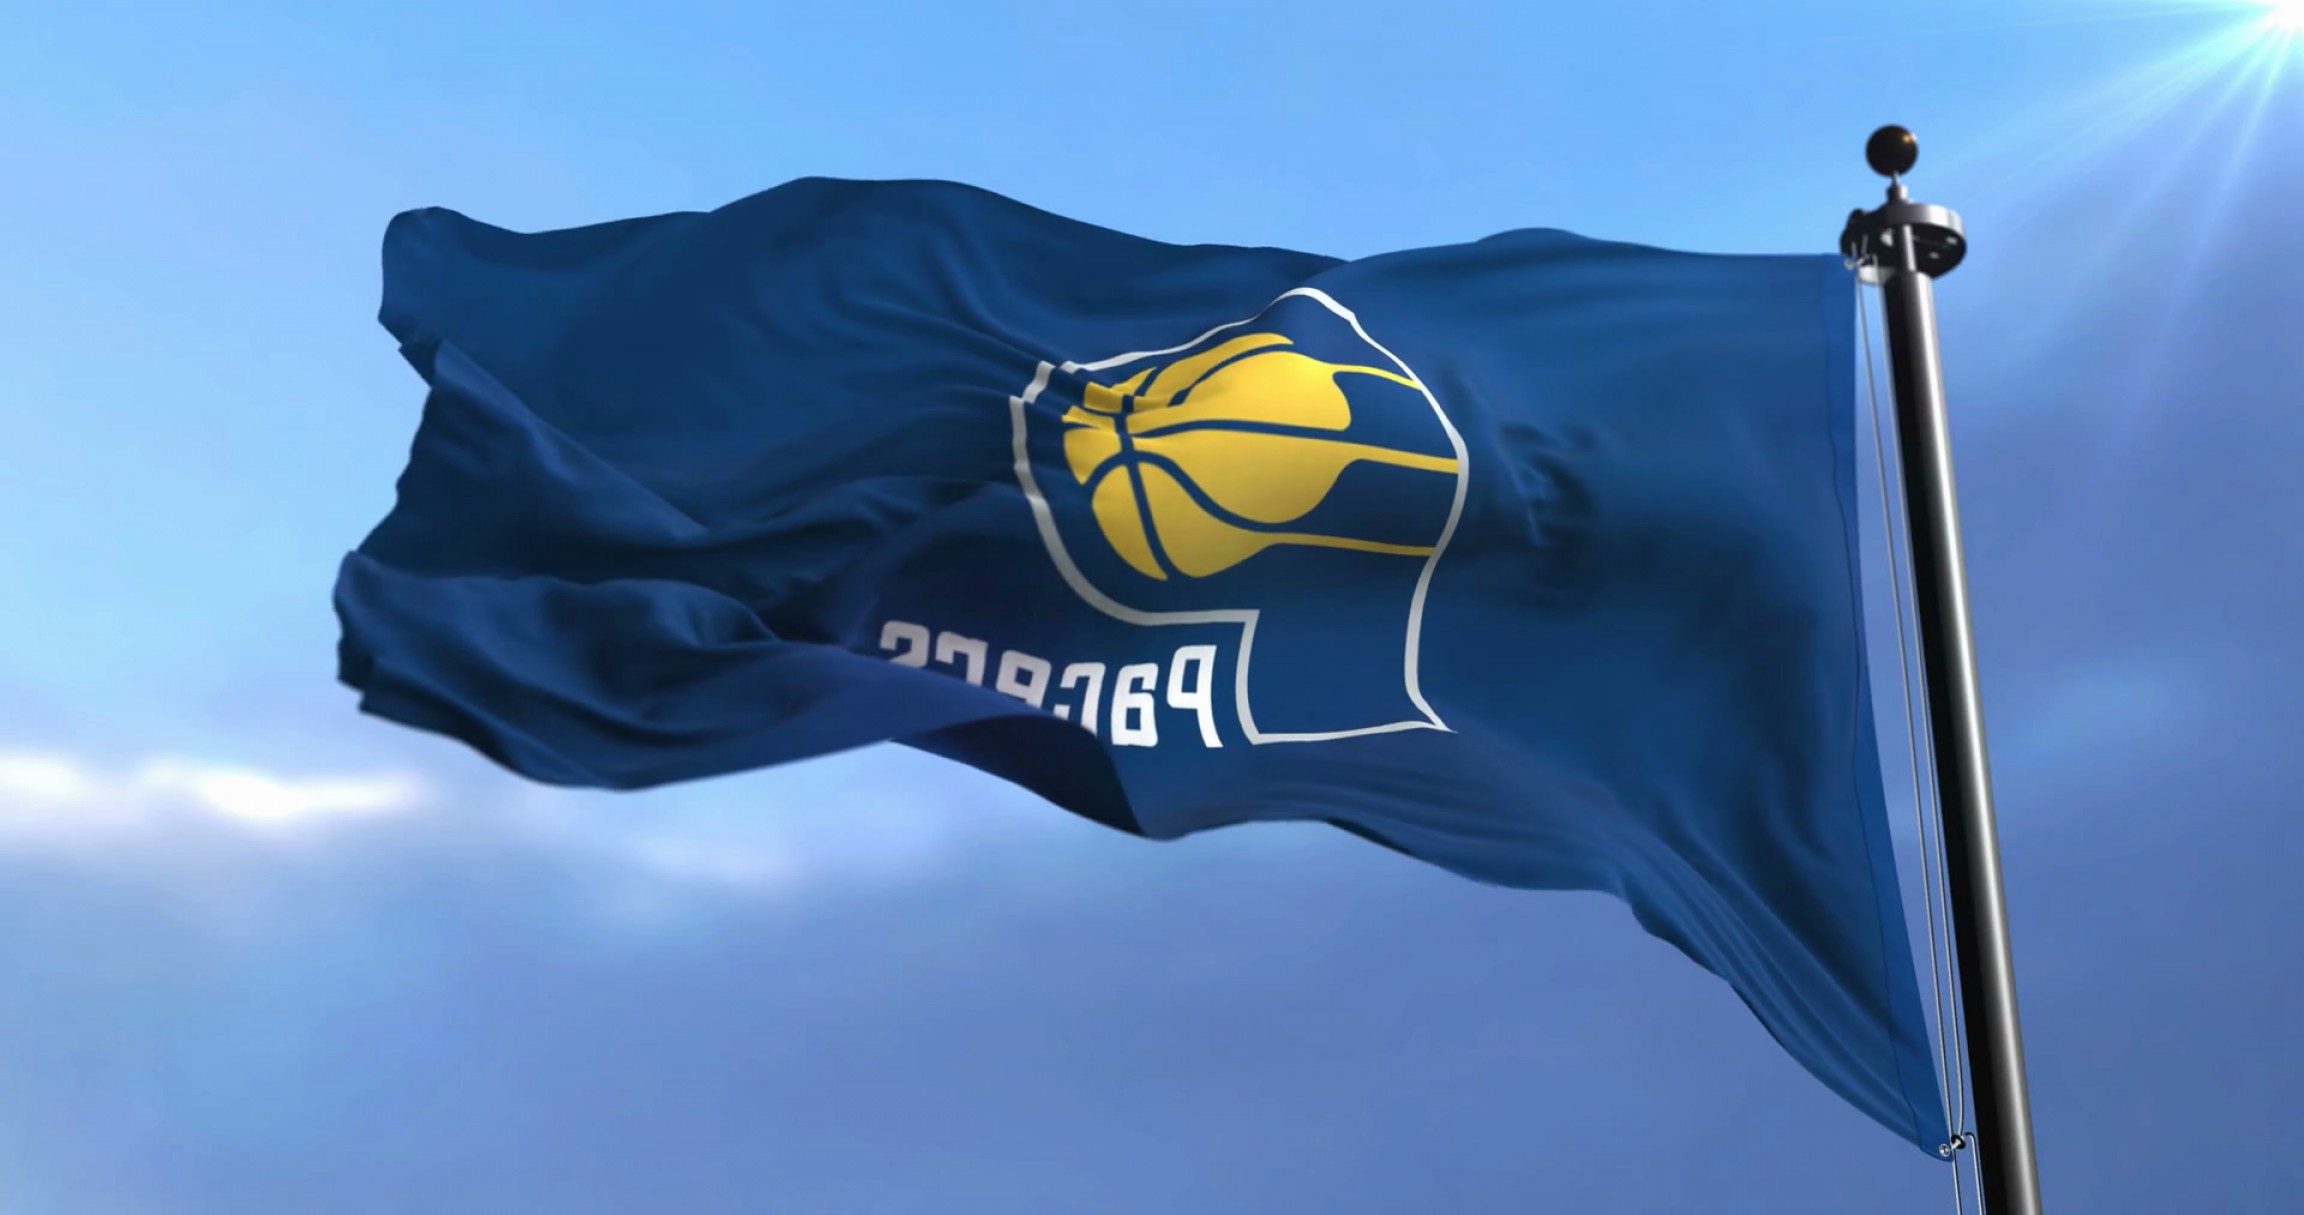 Indiana Pacers Logo Vector: Flag Of The Team Of The Nba Indiana Pacers American Professional Basketball Team Waving At Wind Loop Rhehhqfjce